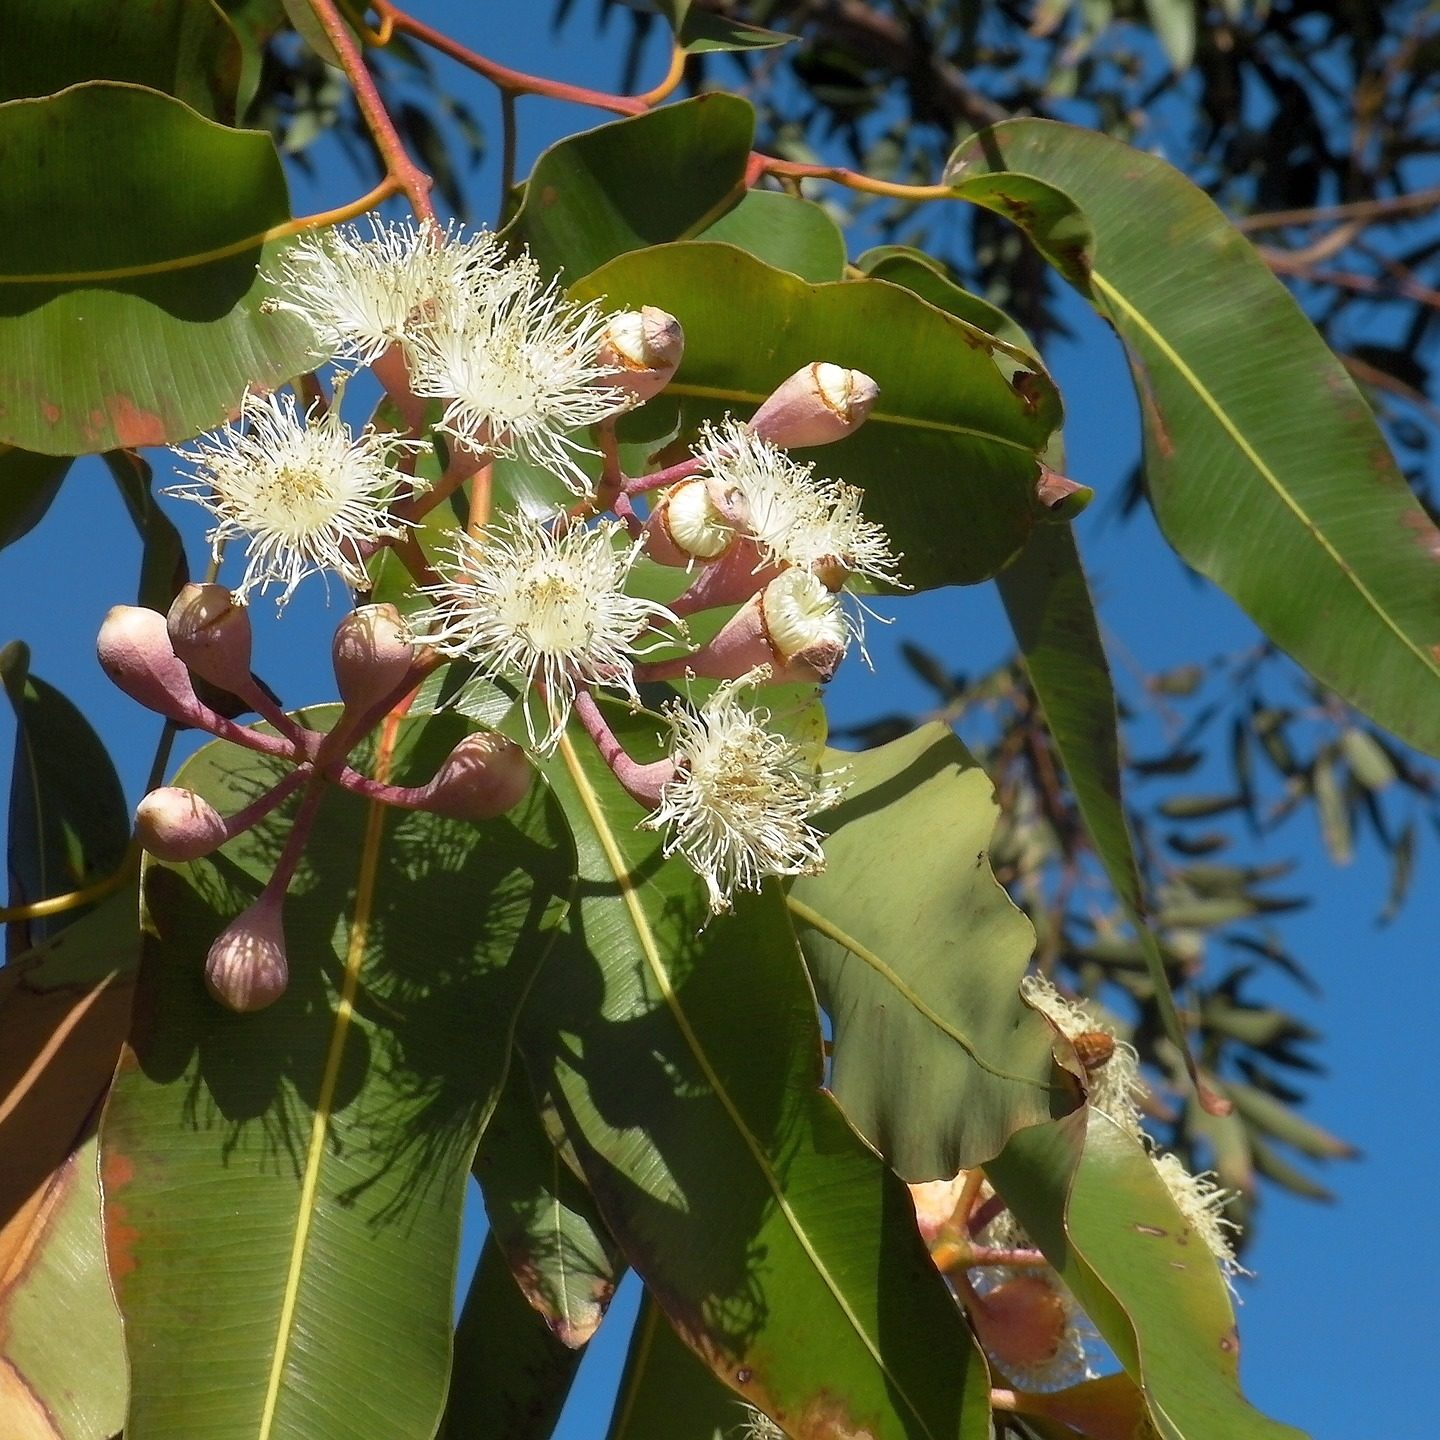 Researchers use CRISPR to prevent eucalyptus trees from being invasive